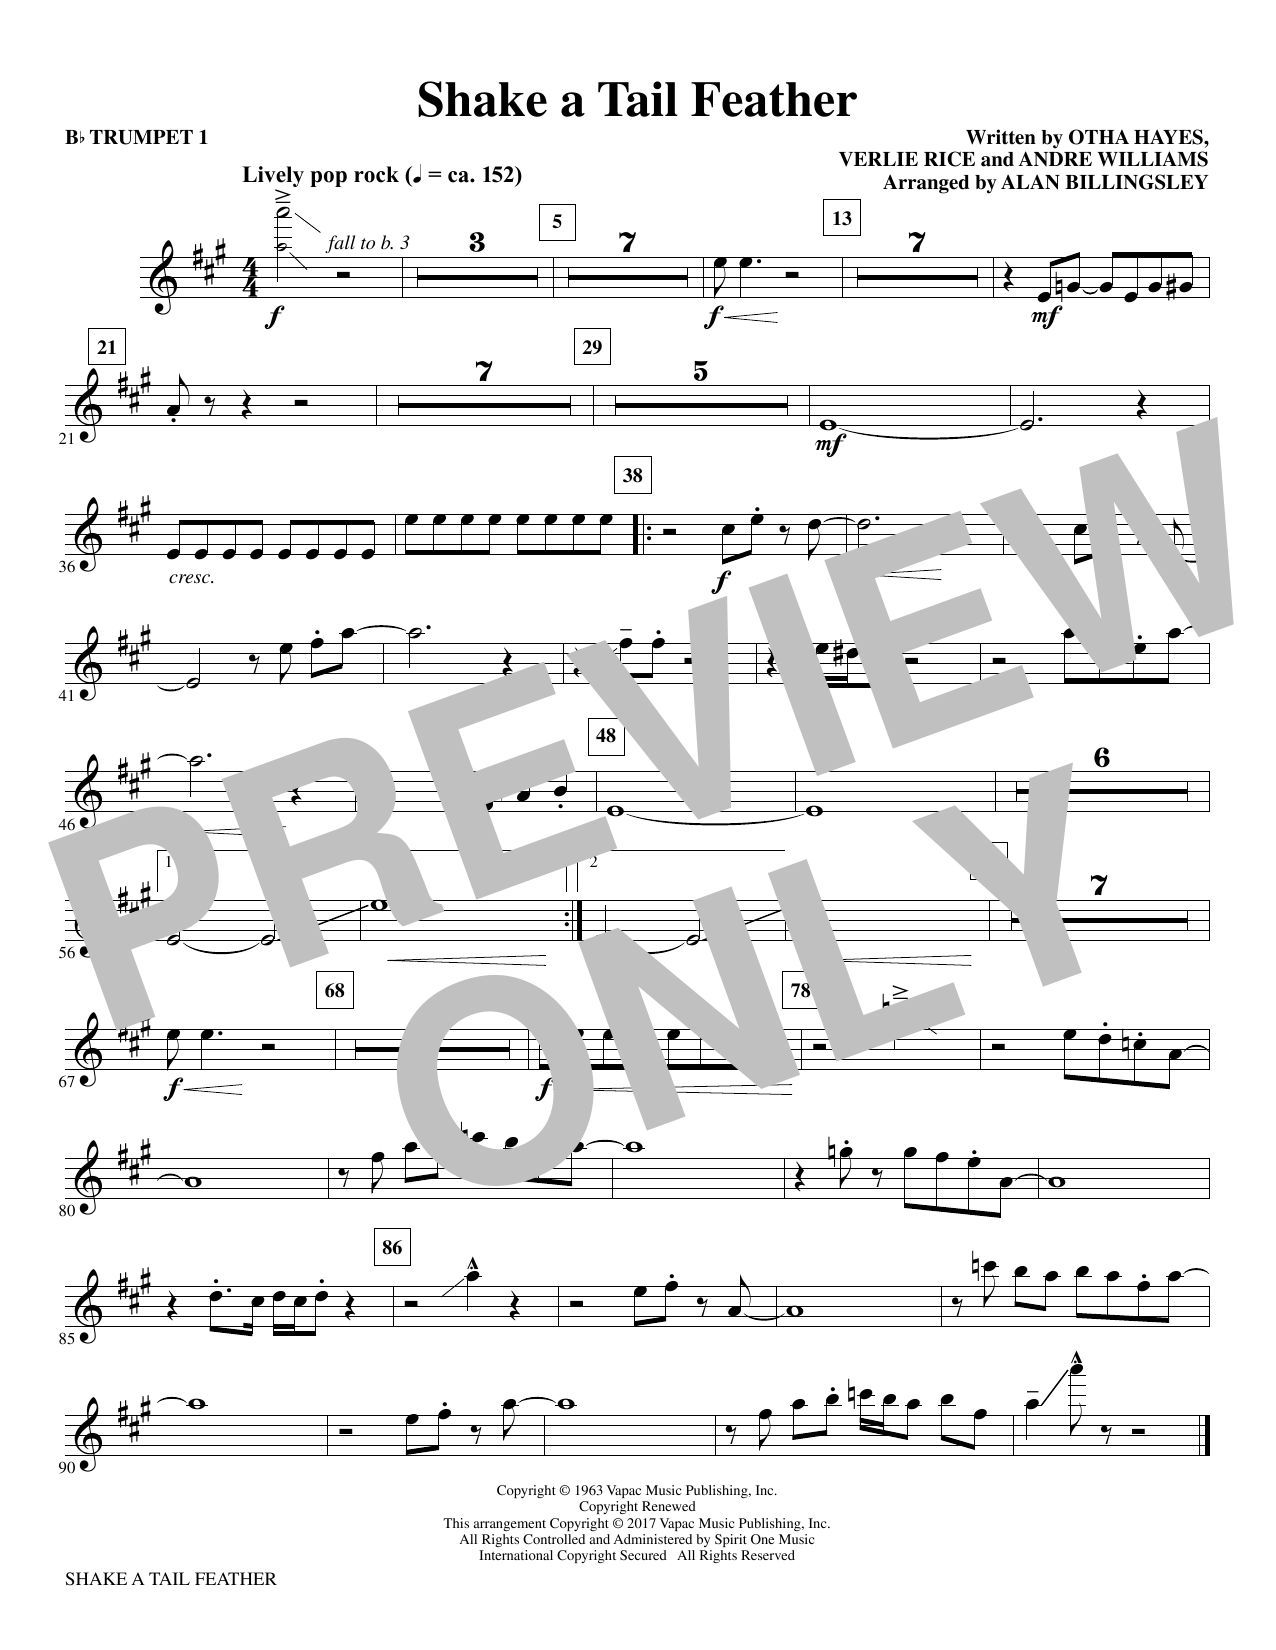 Shake a Tail Feather (complete set of parts) sheet music for orchestra/band by Alan Billingsley and Andre Williams. Score Image Preview.